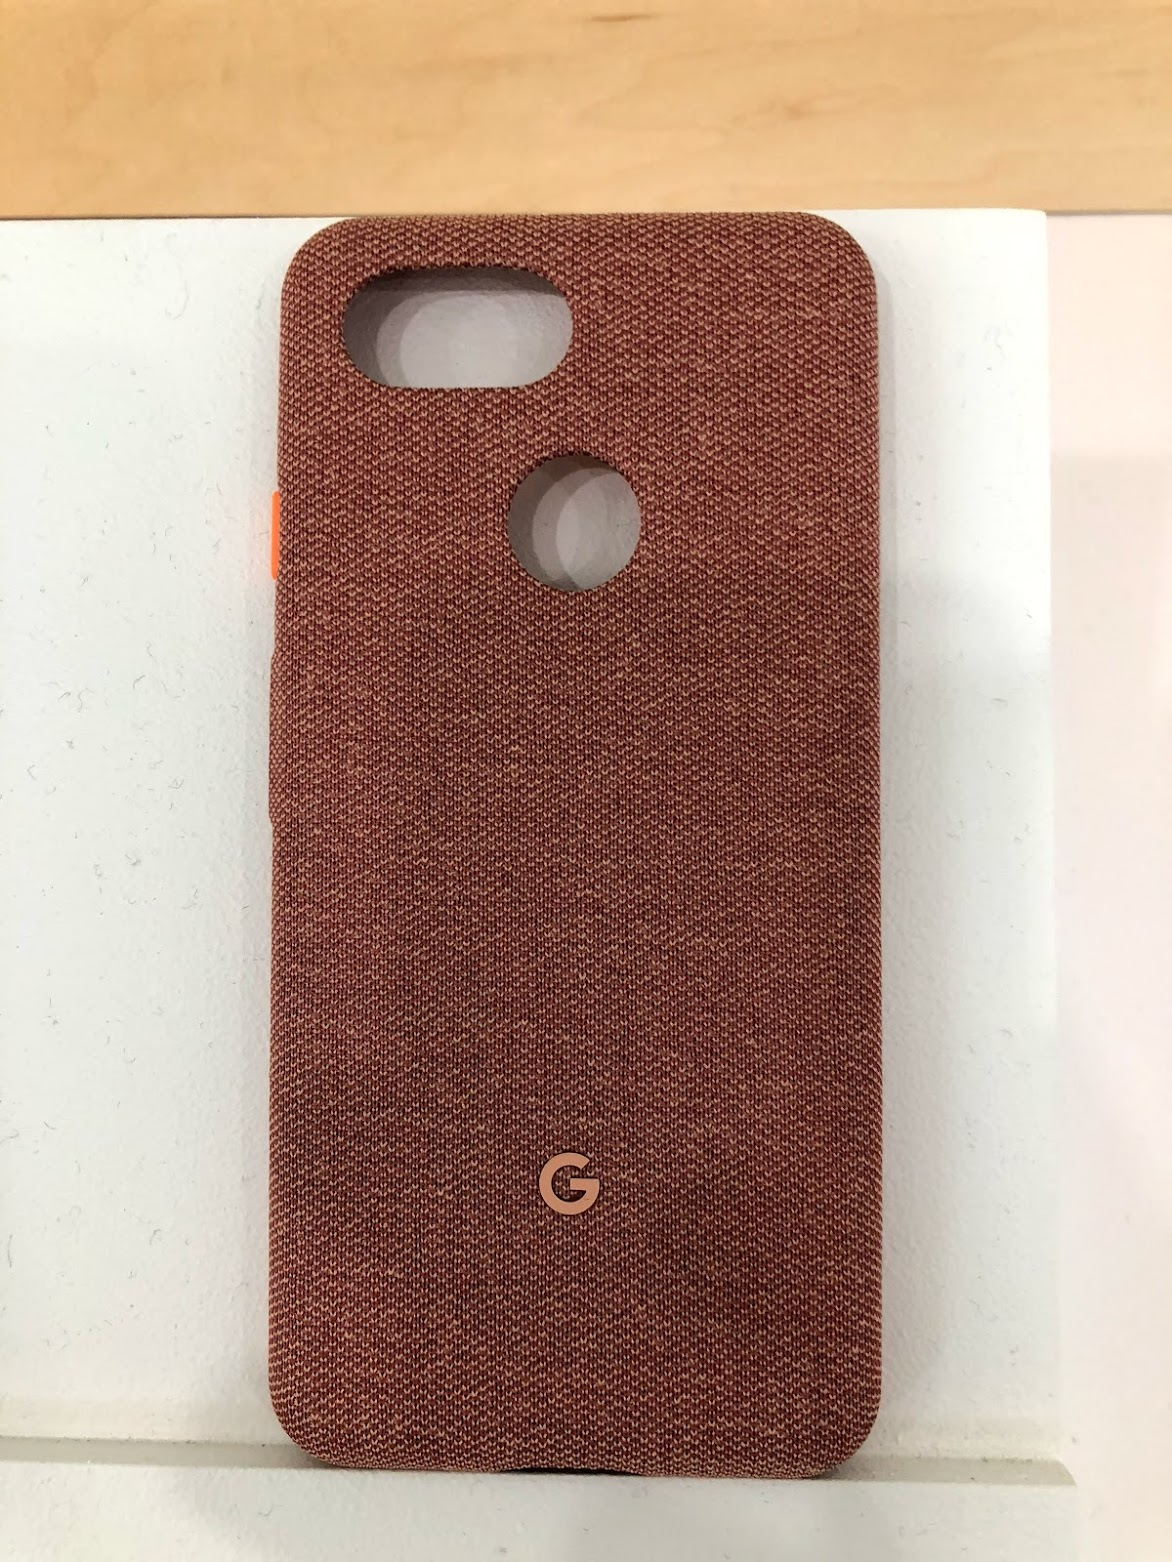 newest df6e4 cd7b4 Hands-on: Every 'Made by Google' fabric case for Pixel 3 and Pixel 3 ...